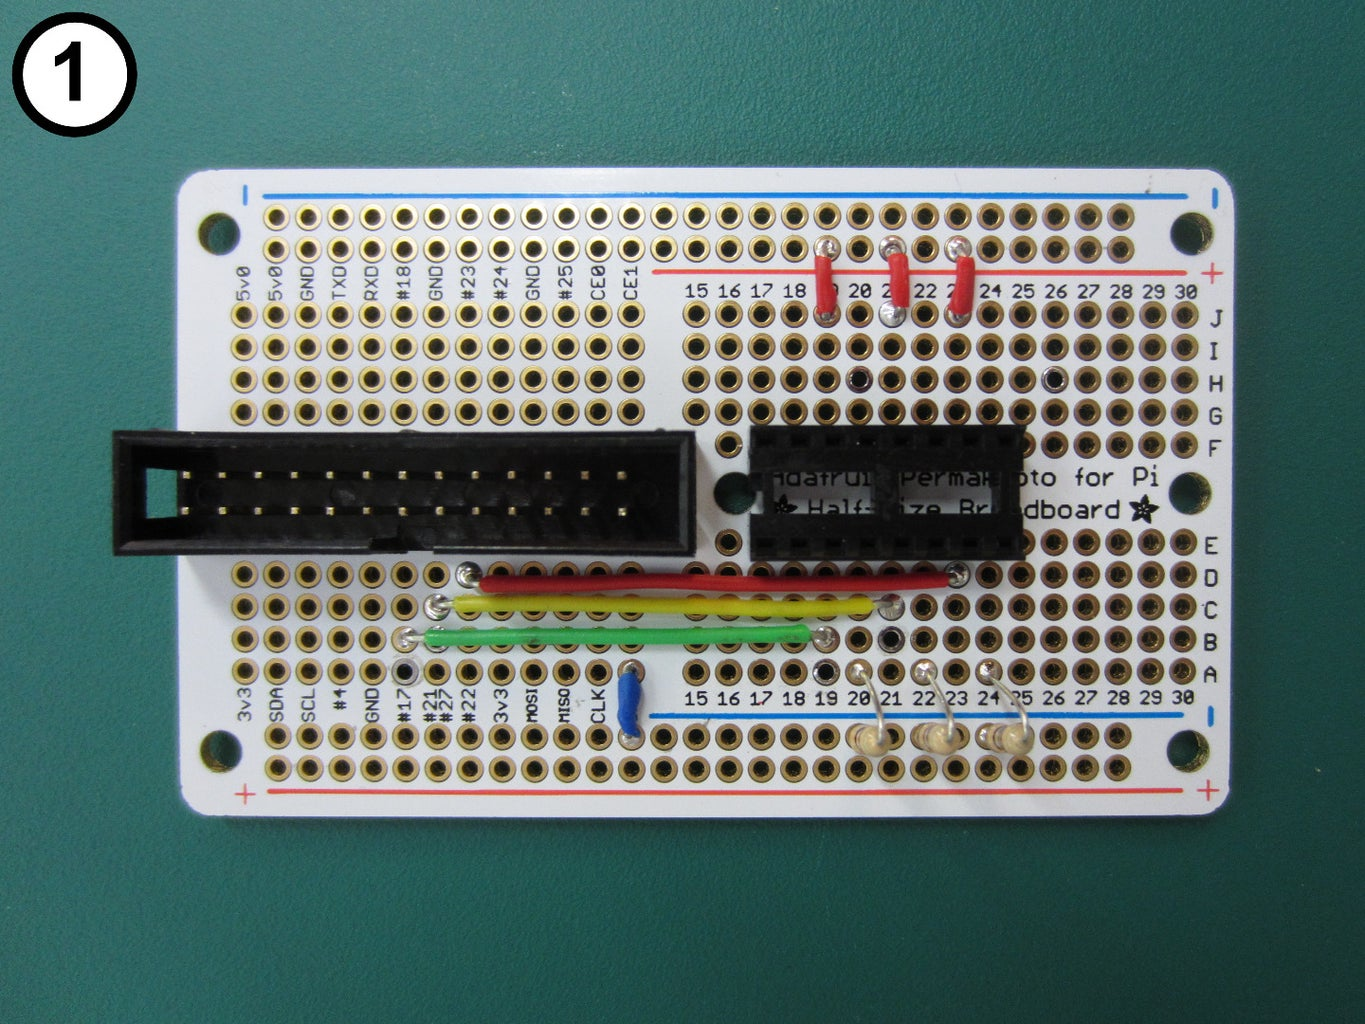 Assemble and Solder the Circuit Board